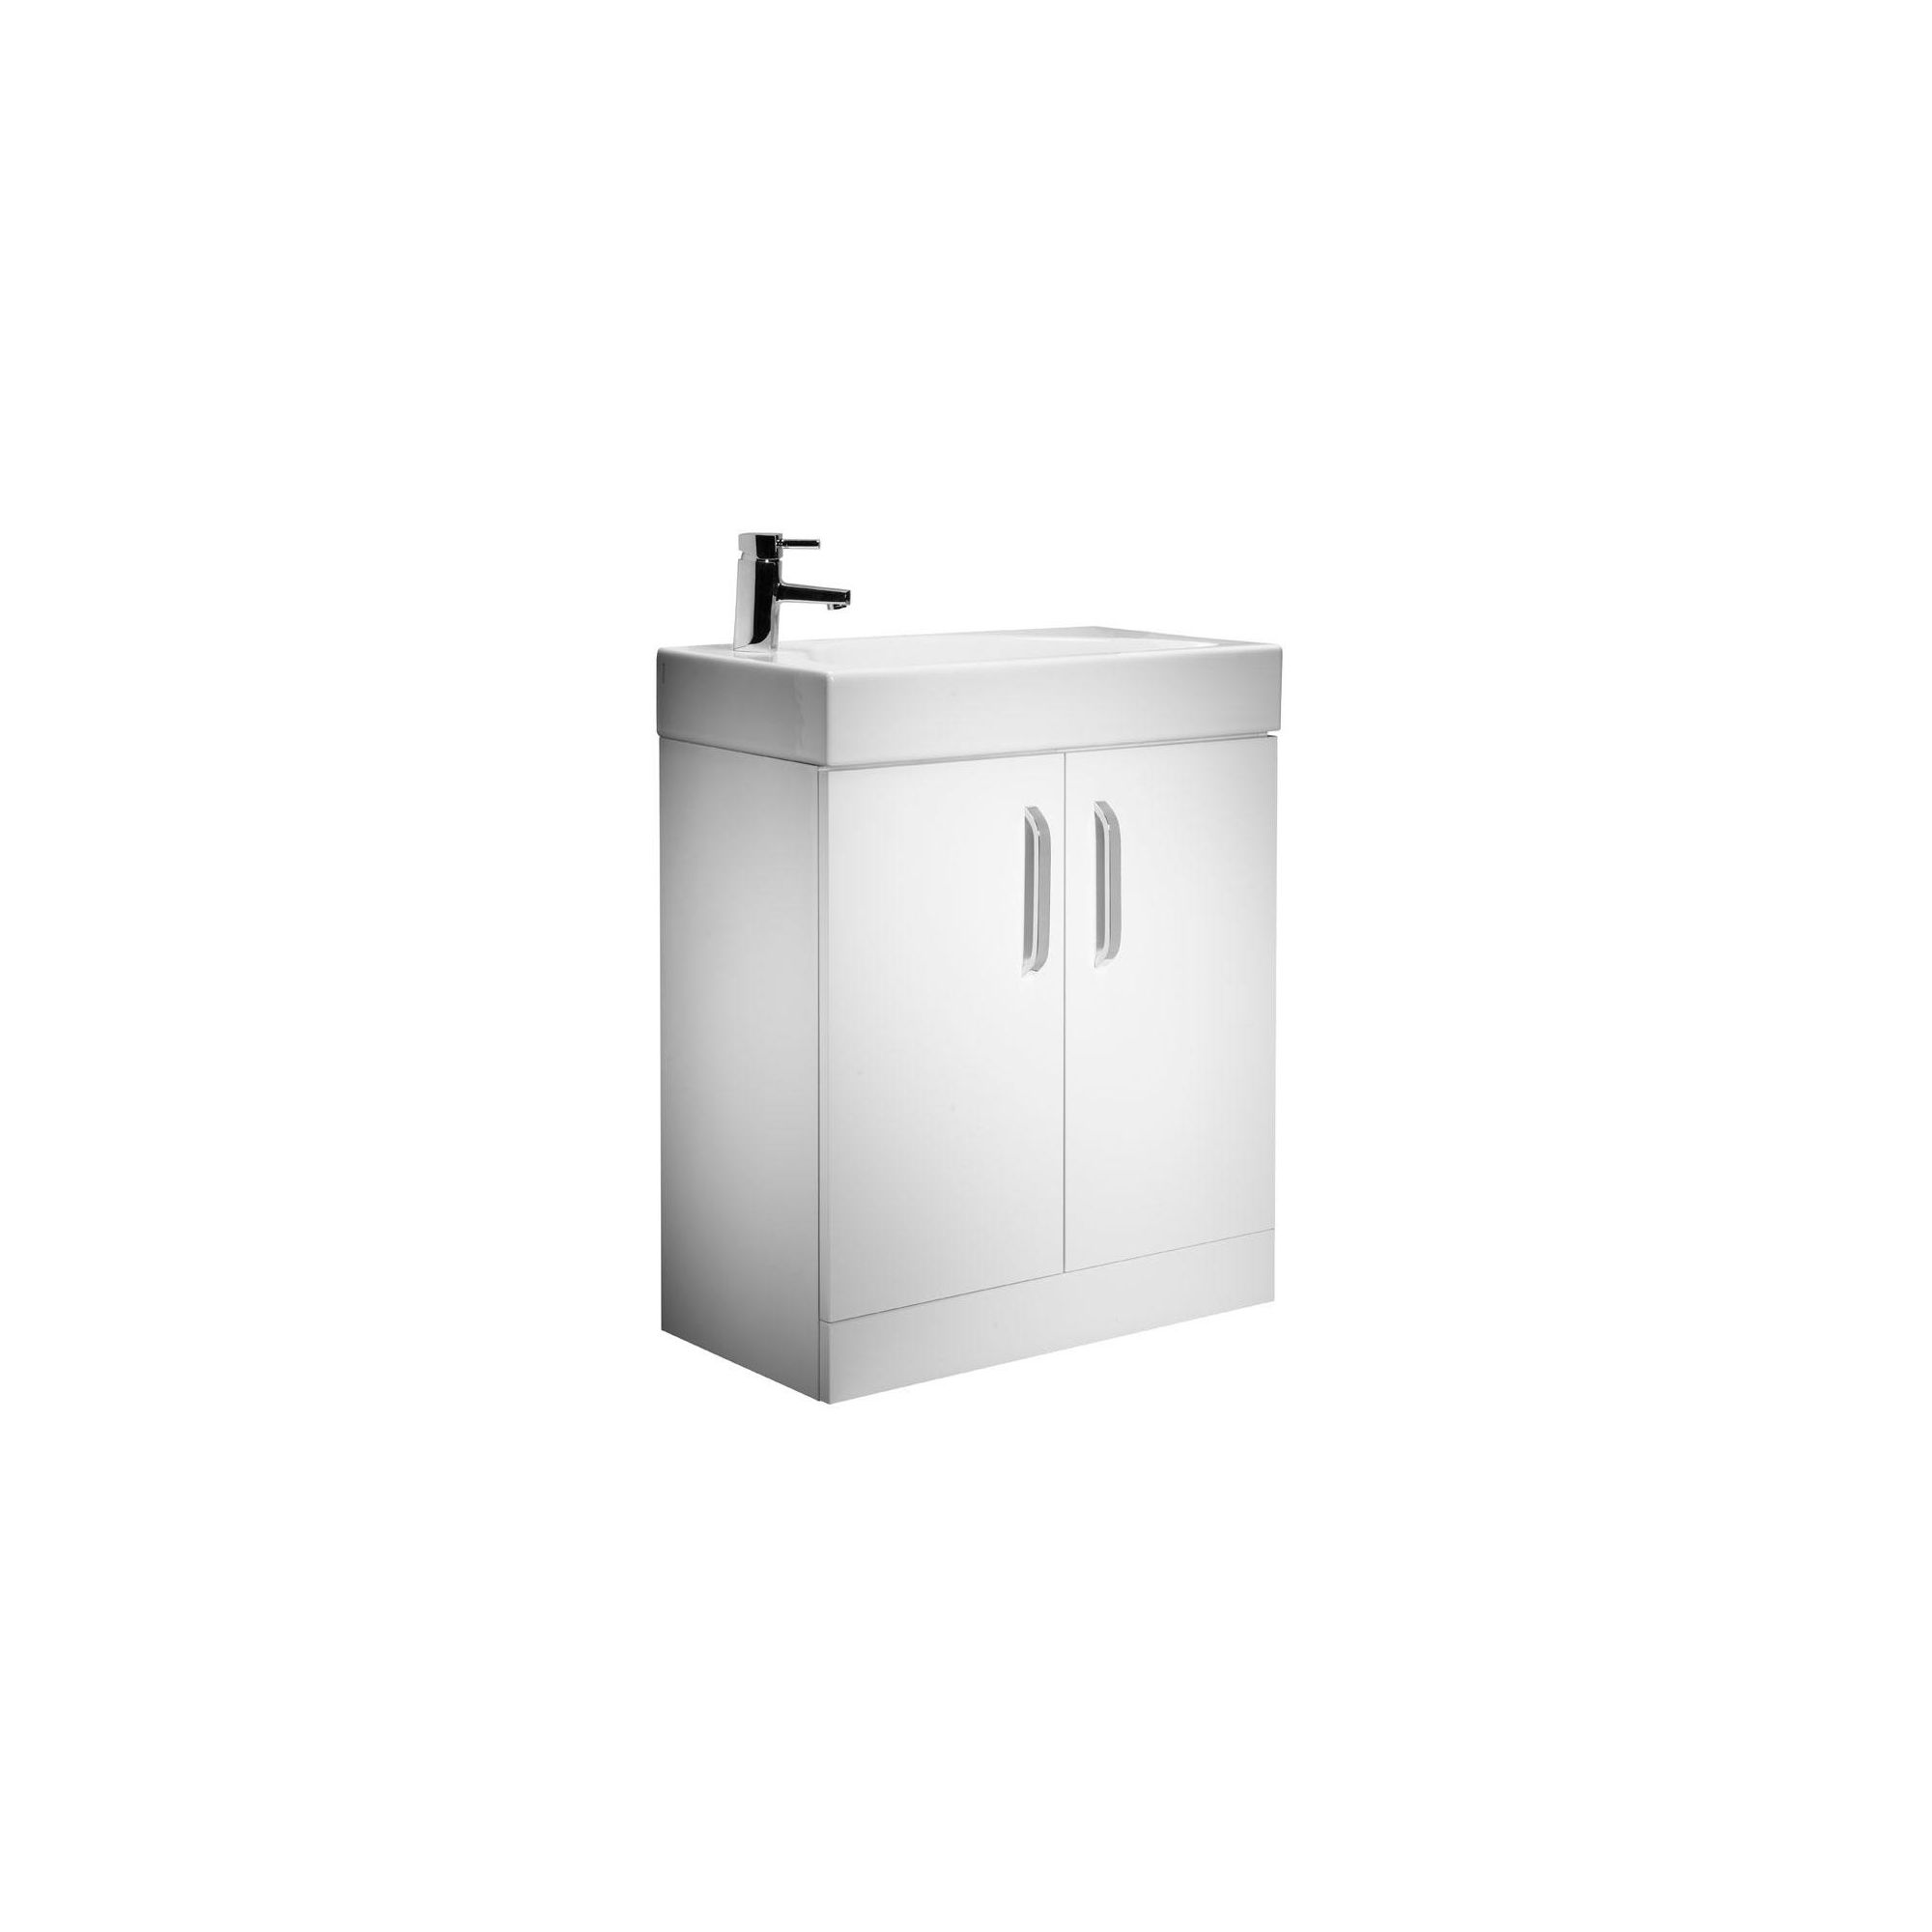 Tavistock Arc White Floor Standing Cabinet and Basin - 1 Tap Hole - 700mm Wide